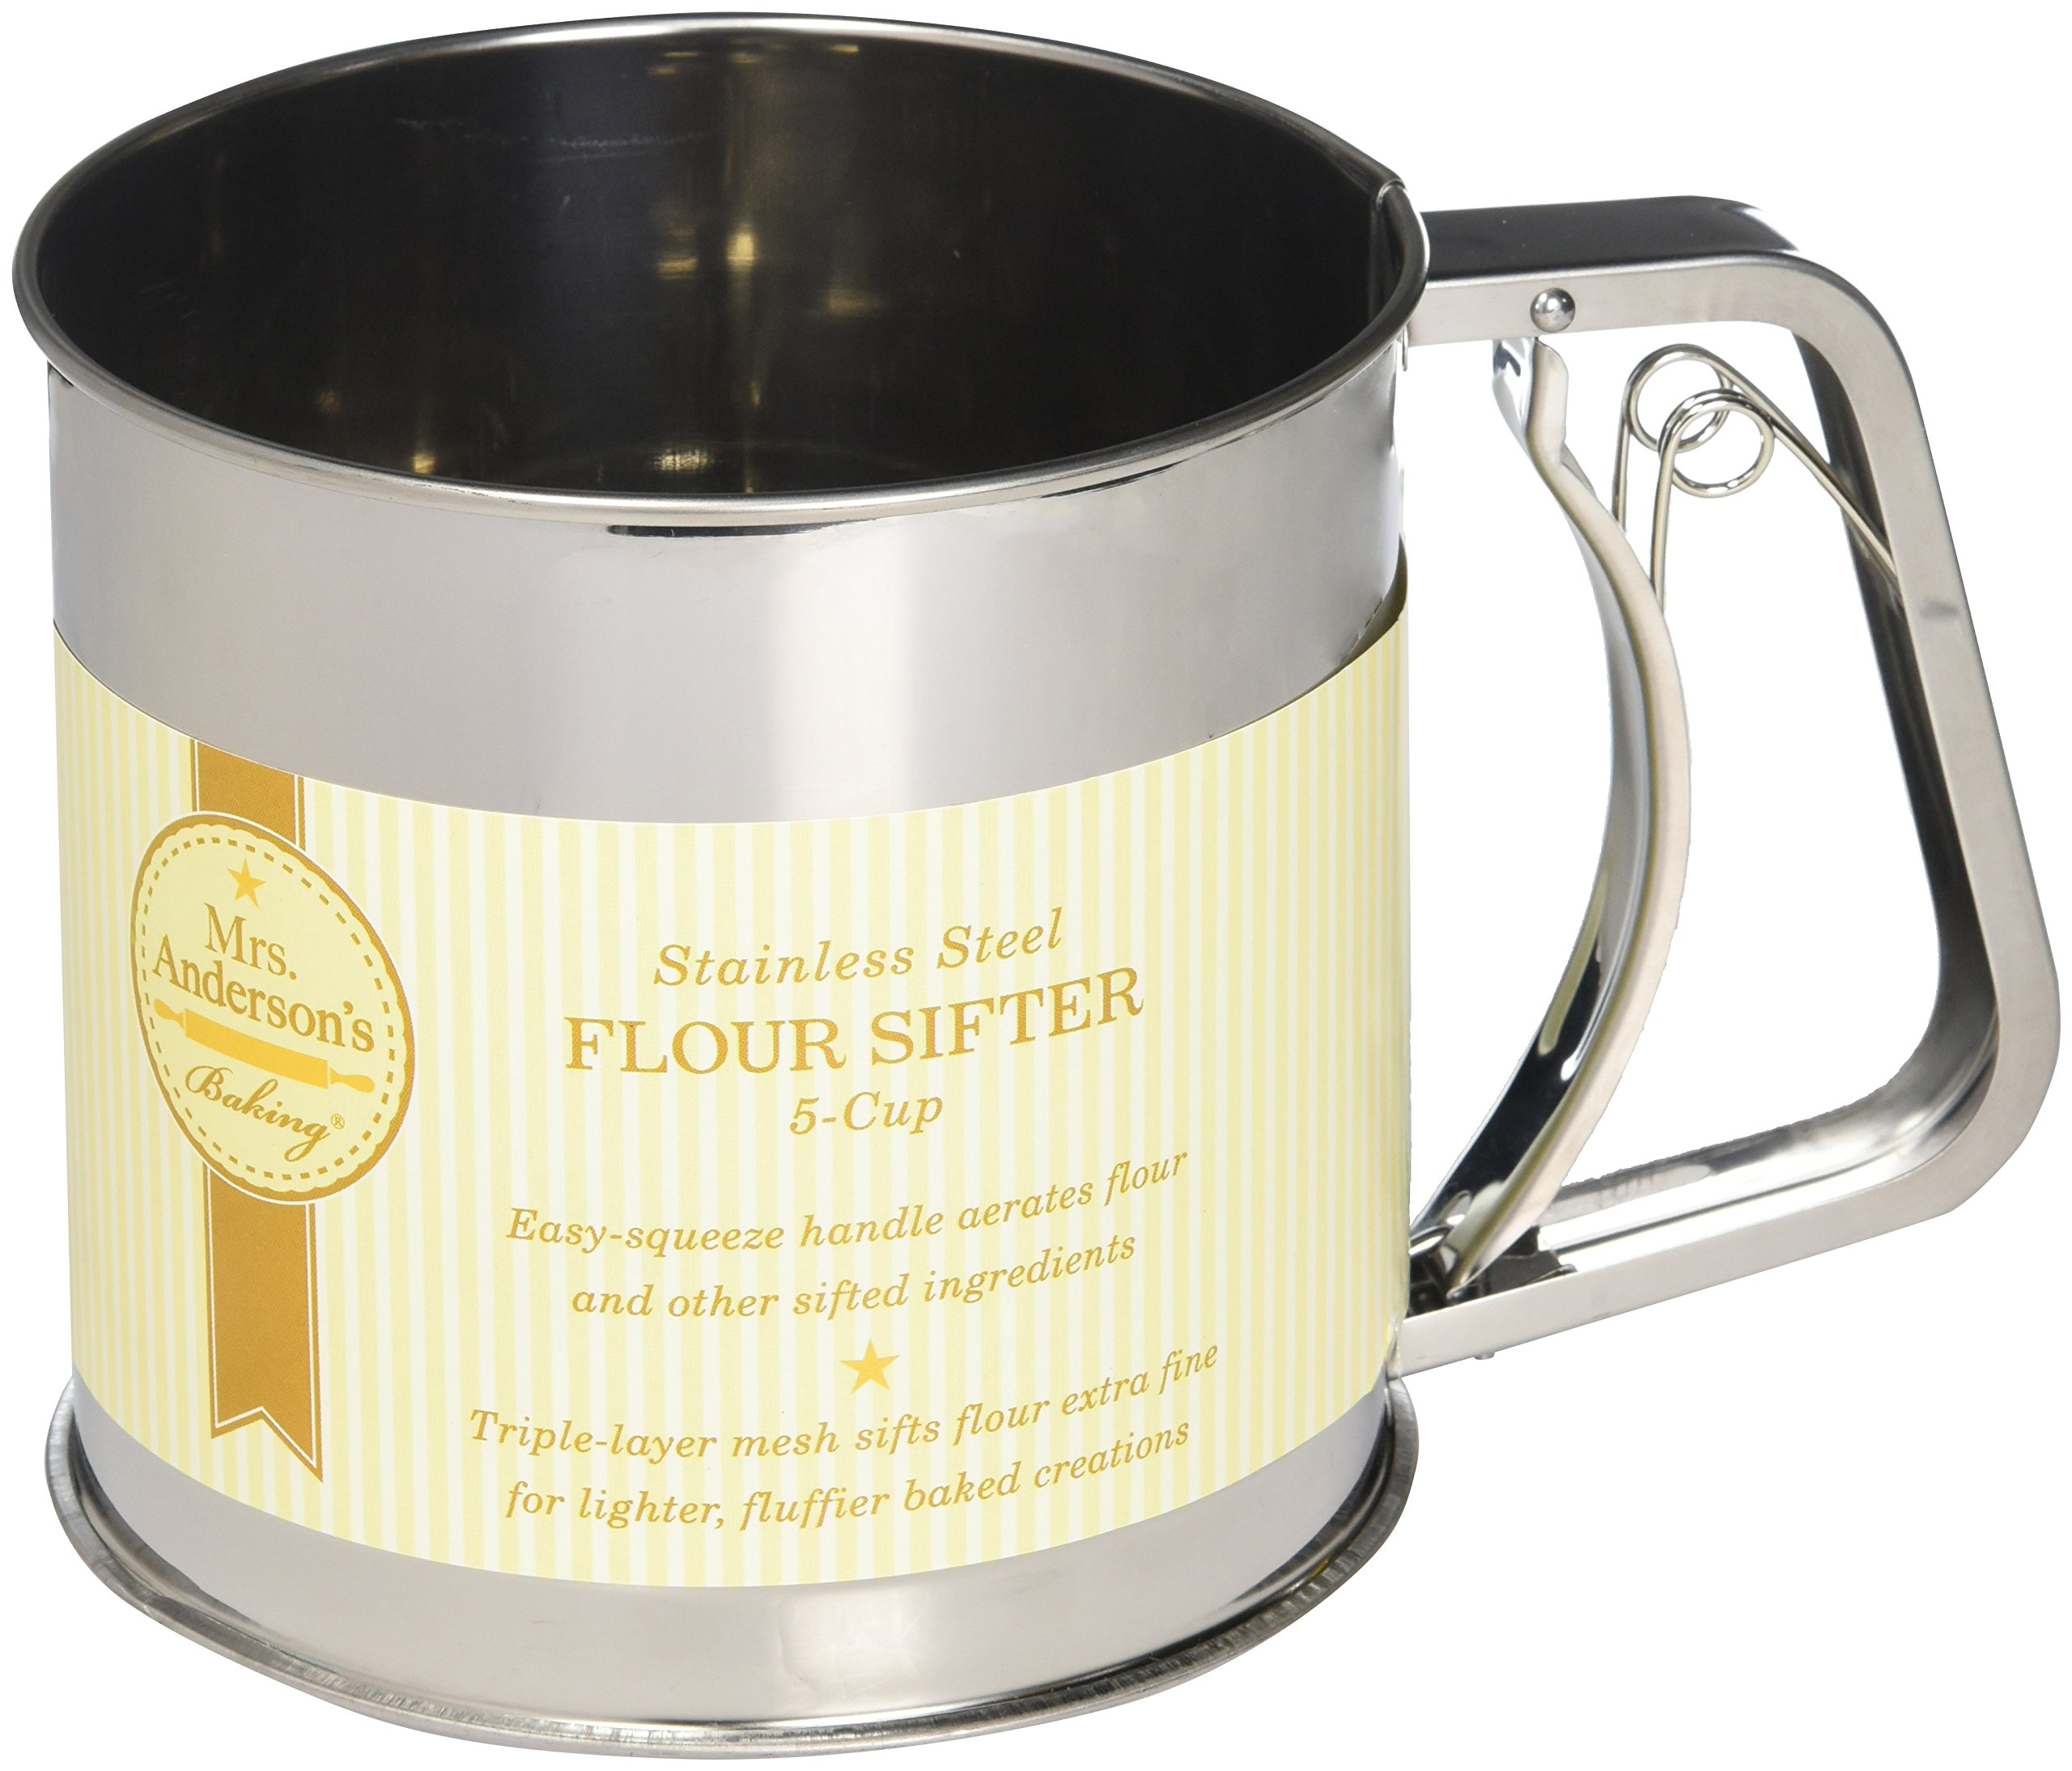 Mrs. Anderson's Baking Hand Squeeze Flour Sifter, Stainless Steel, 5-Cup Capacity